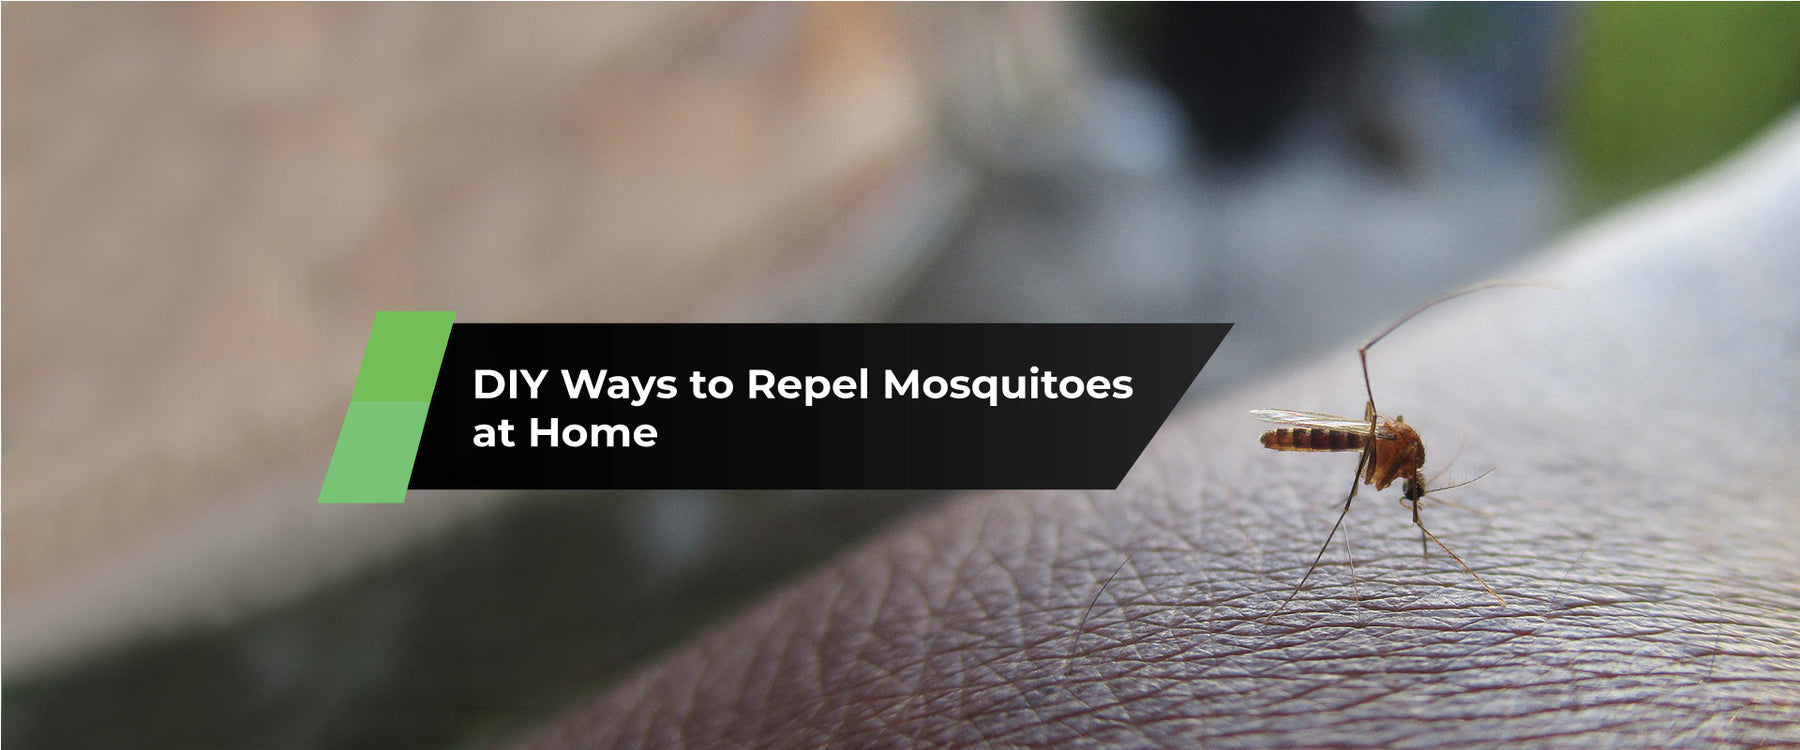 DIY Ways to Repel Mosquitoes at Home